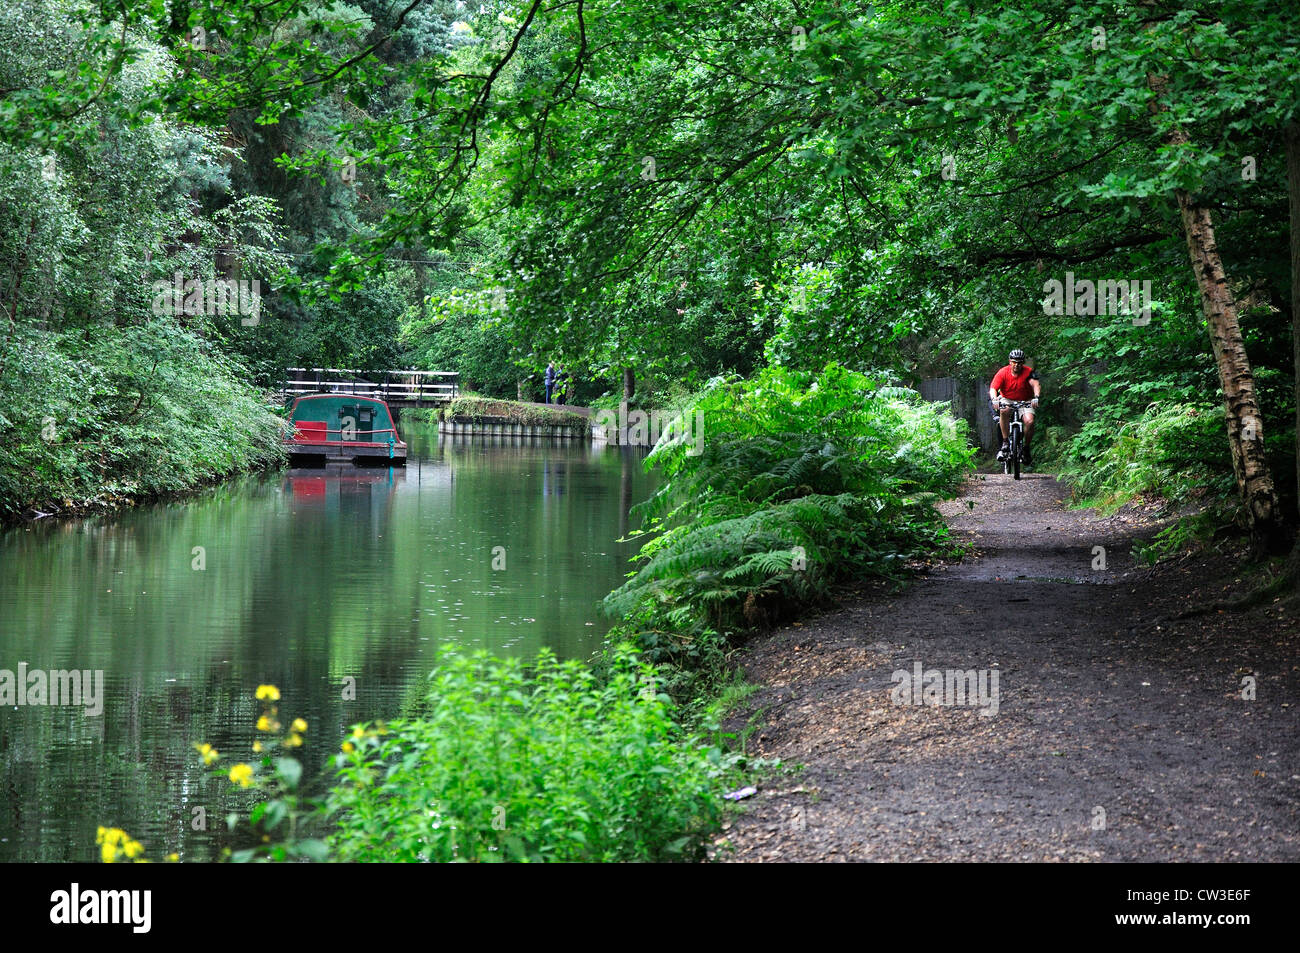 A view of the Basingstoke Canal and towpath with a cyclist UK - Stock Image